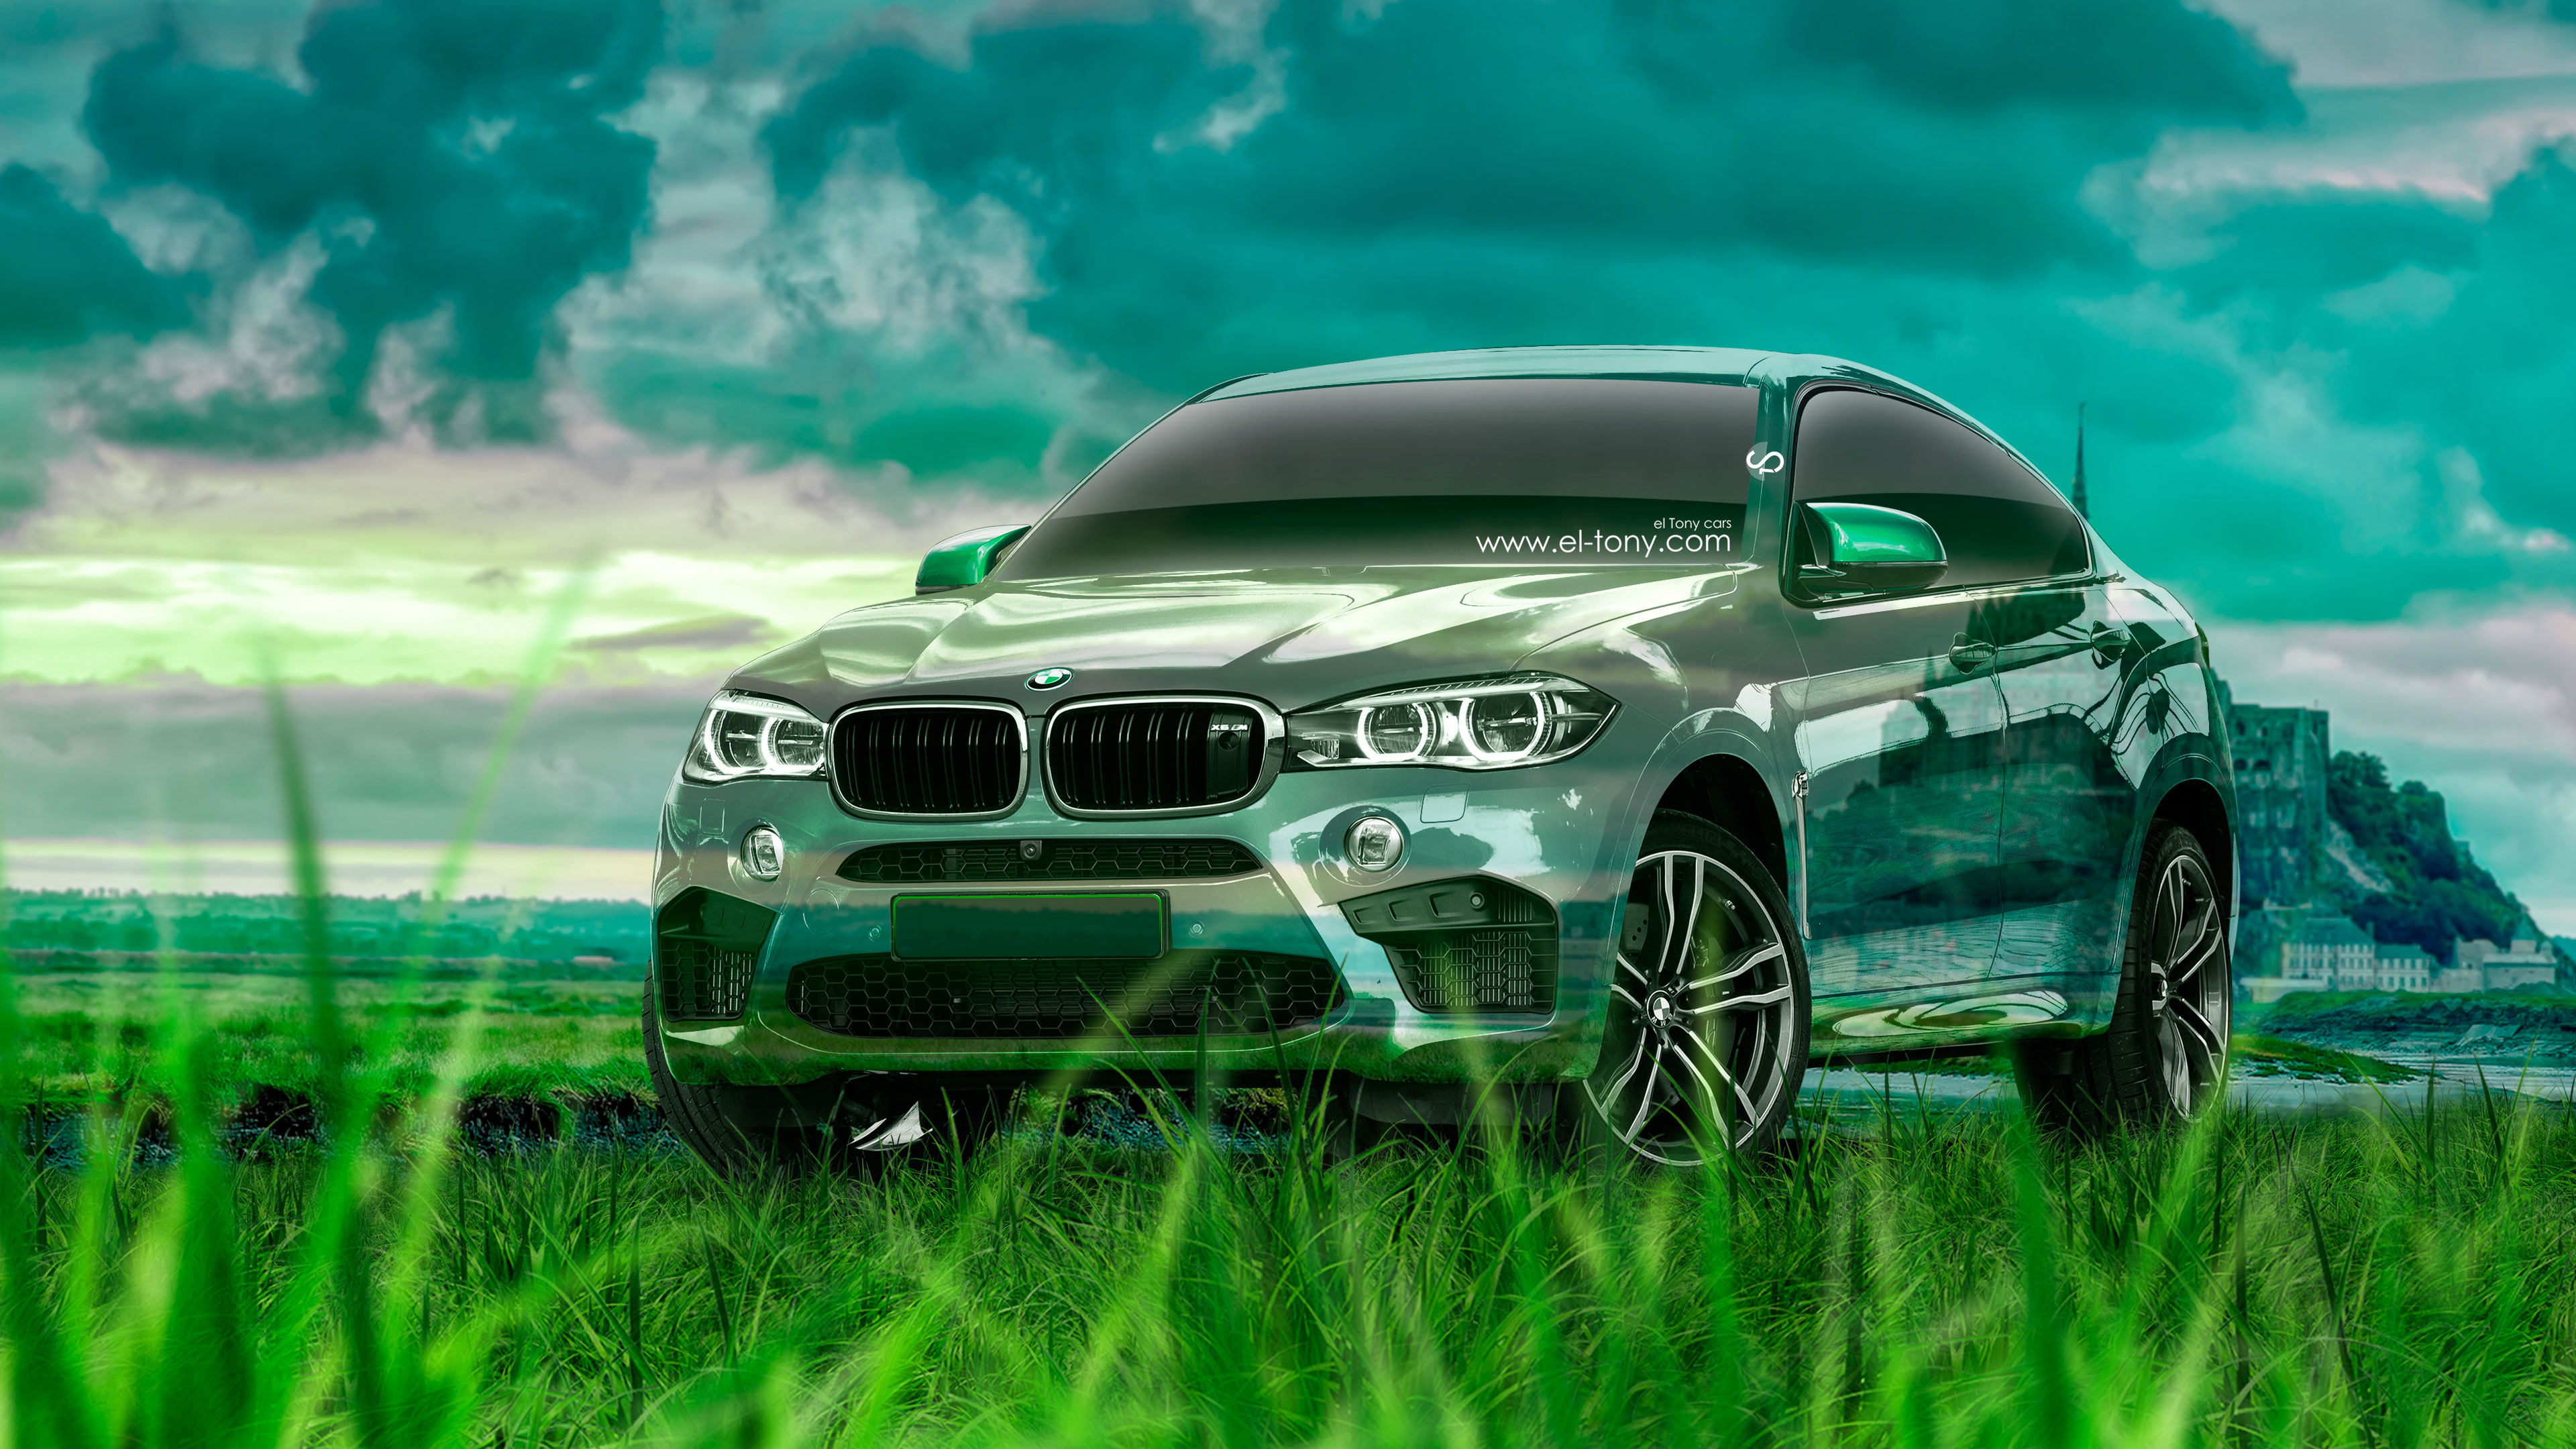 BMW-X6-M-Tuning-Crossover-Crystal-Nature-Car-2015-Green-Grass-Style-4K-Wallpapers-design-by-Tony-Kokhan-www.el-tony.com-image